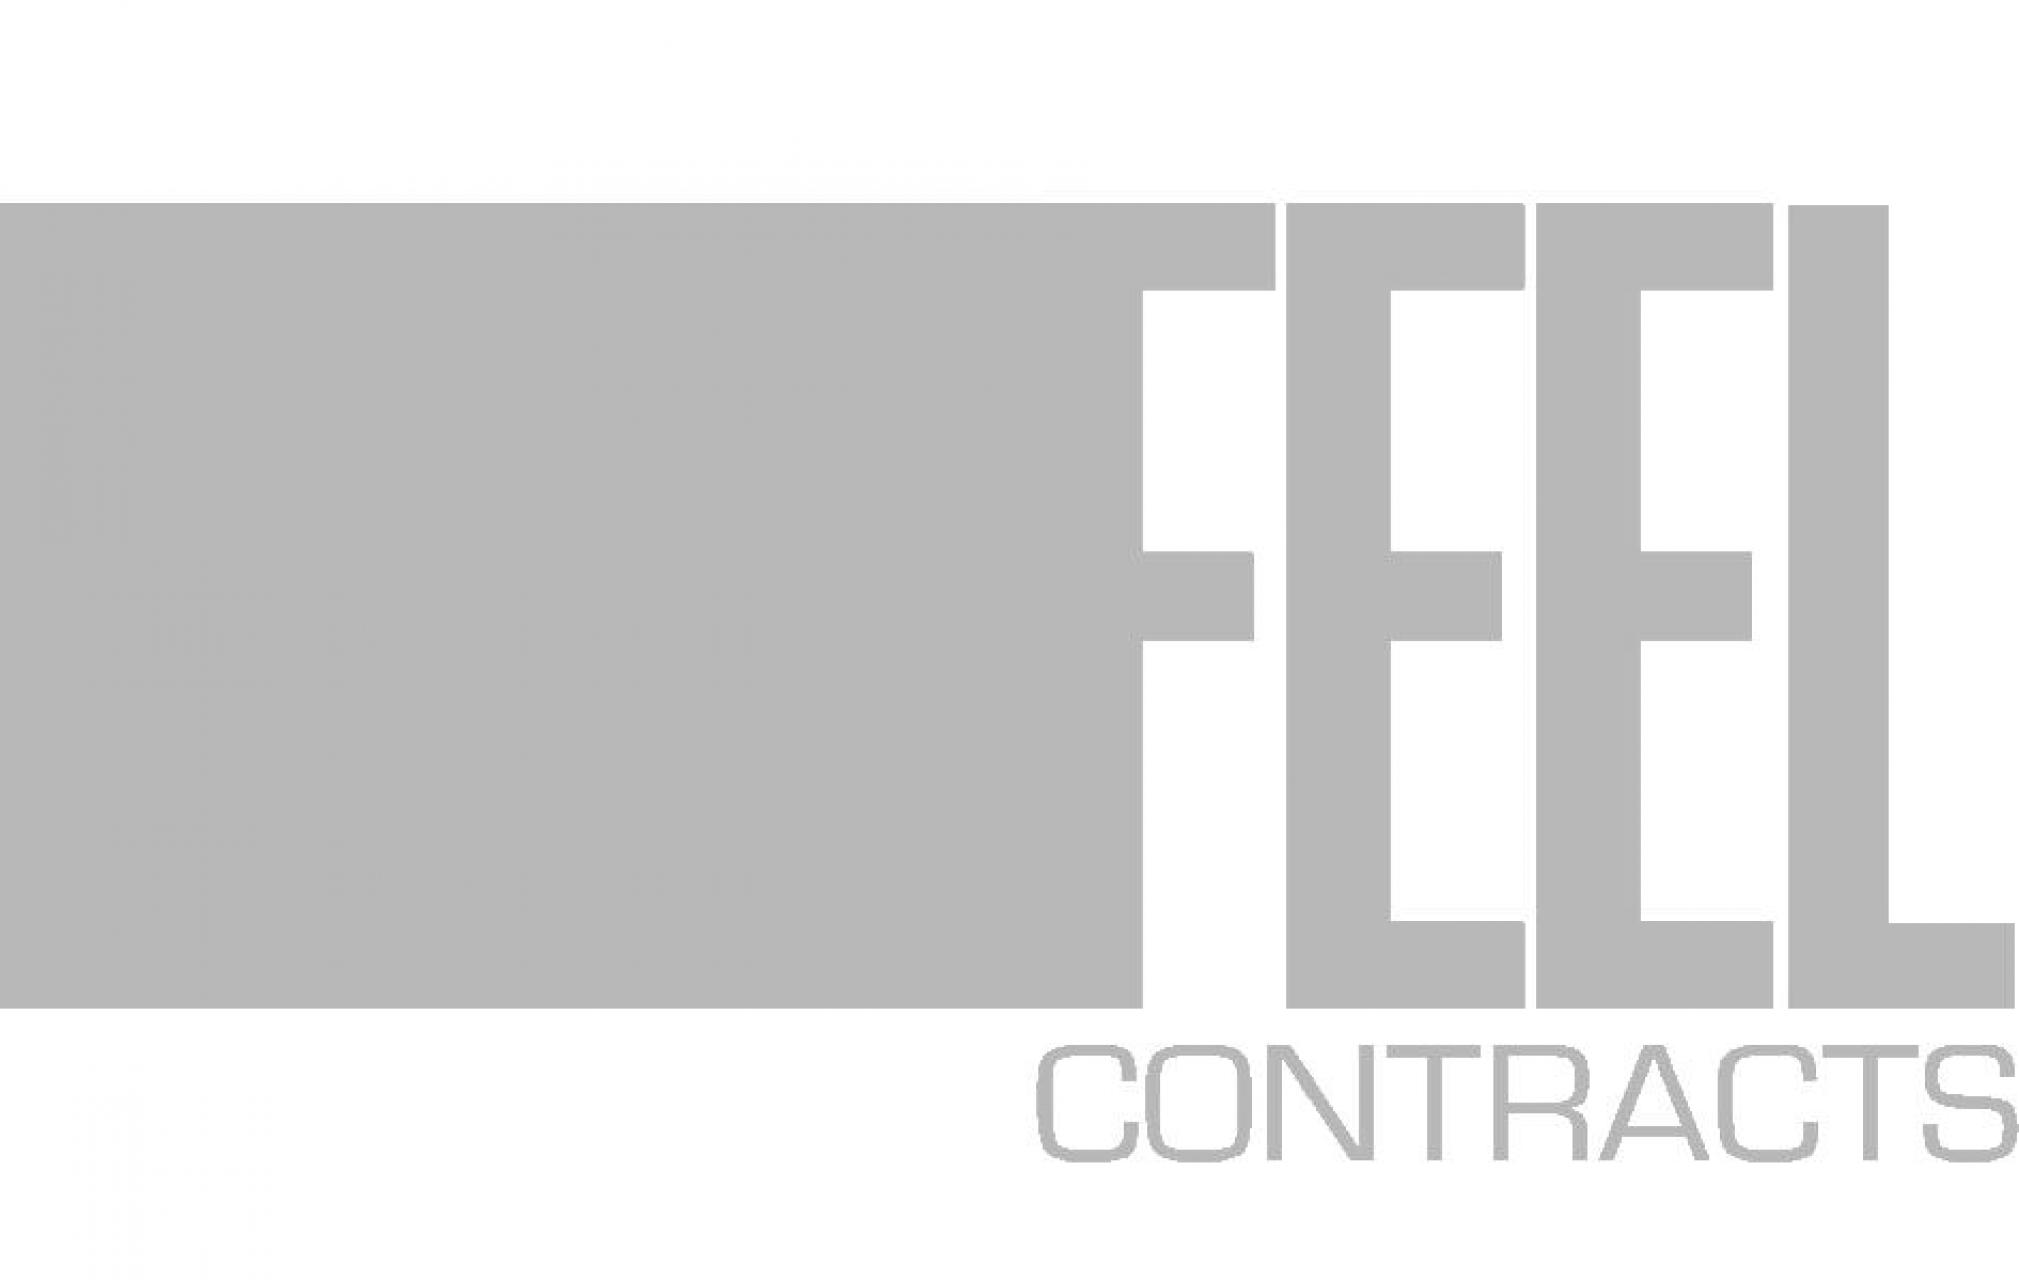 DECUSSO- GOGO- FEEL CONTRACTS, S.L.